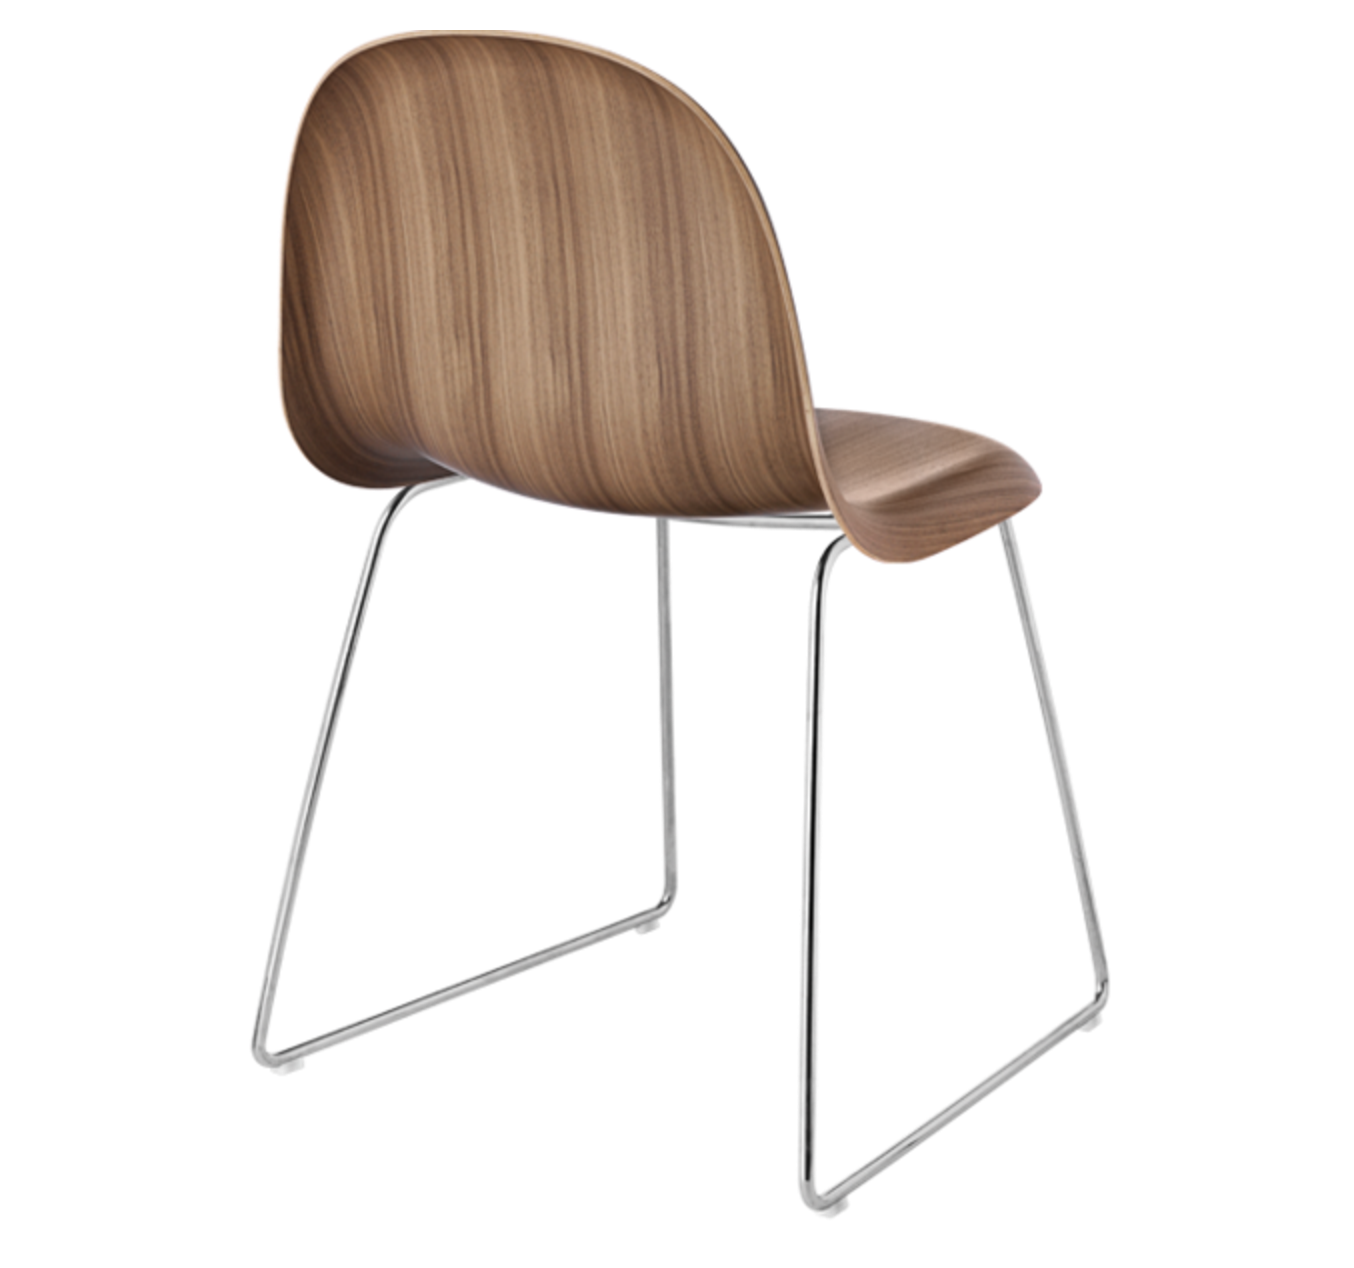 3D Dining Chair - Un-upholstered Sledge Crome base, American Walnut shell fra GUBI